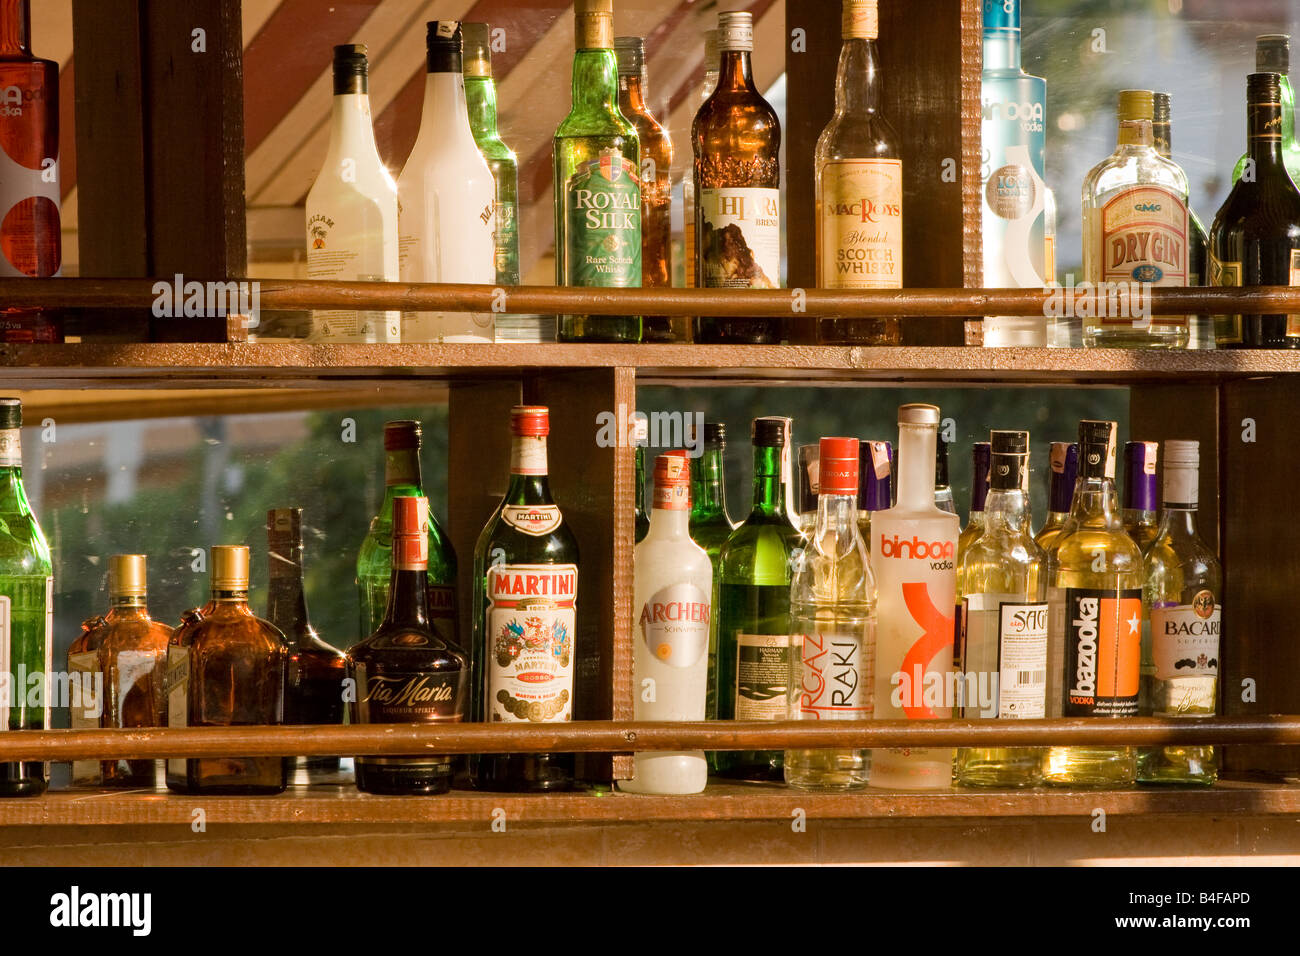 Range Bouteille Bar Alcohol Bottles In A Row On A Bar S Shelf Stock Photo 20006741 Alamy